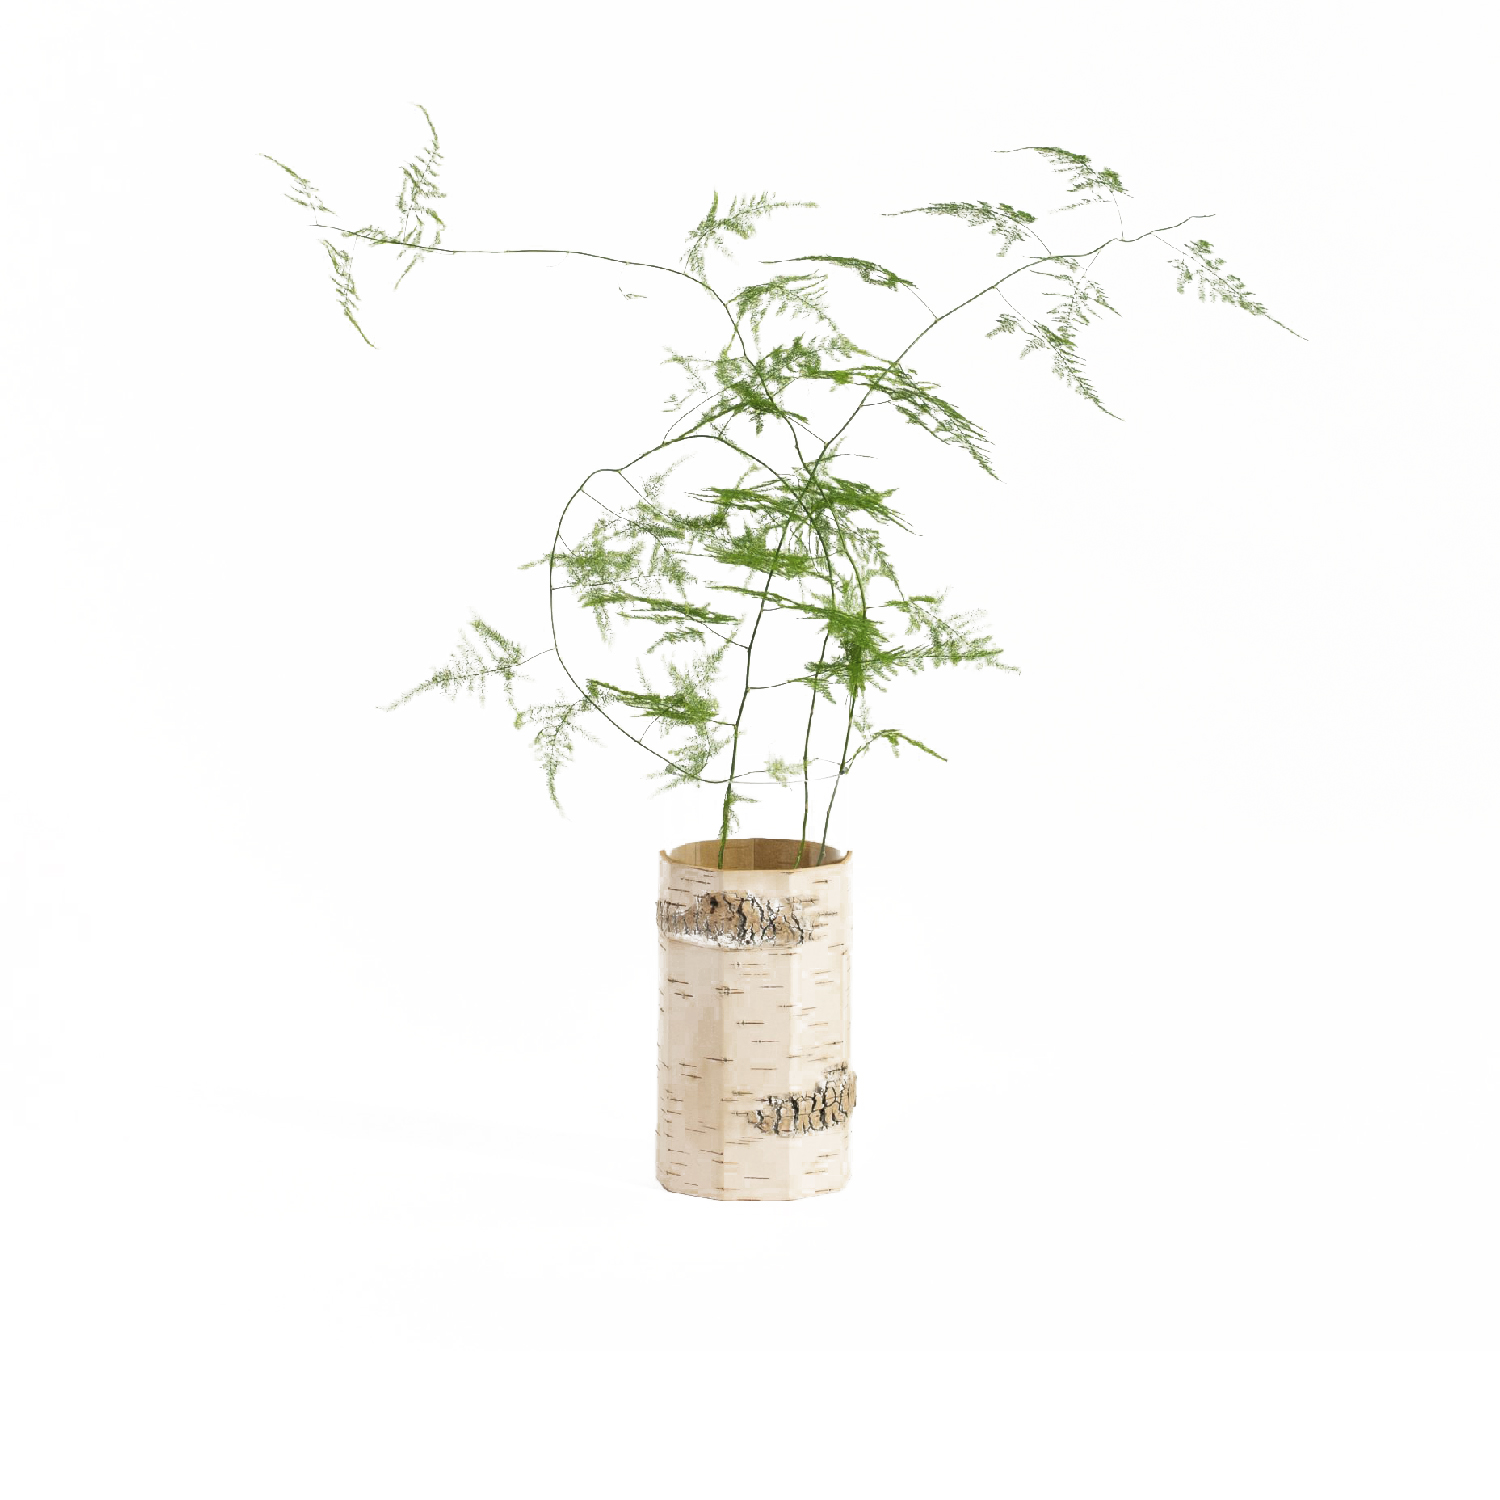 Tara Vase - In our new Tara vase your green favourites and beauties find a home in a familiar natural environment. The warm, bright surface of birch bark combined with the cool smoothness of glass envelope your flowers and augment them. Together they create a beautiful object for your interior. Whether housing branches of delicate spring blooms or a lush bouquet of dried flowers, this elegant birch bark Vase has a place on the table in every season.  The vase's glass insert can be easily removed for cleaning.  Height 22 cm | ø 10,5 cm  Birch bark, glass insert, pine wood (surface: water based wood stain, bees wax) | Matter of Stuff